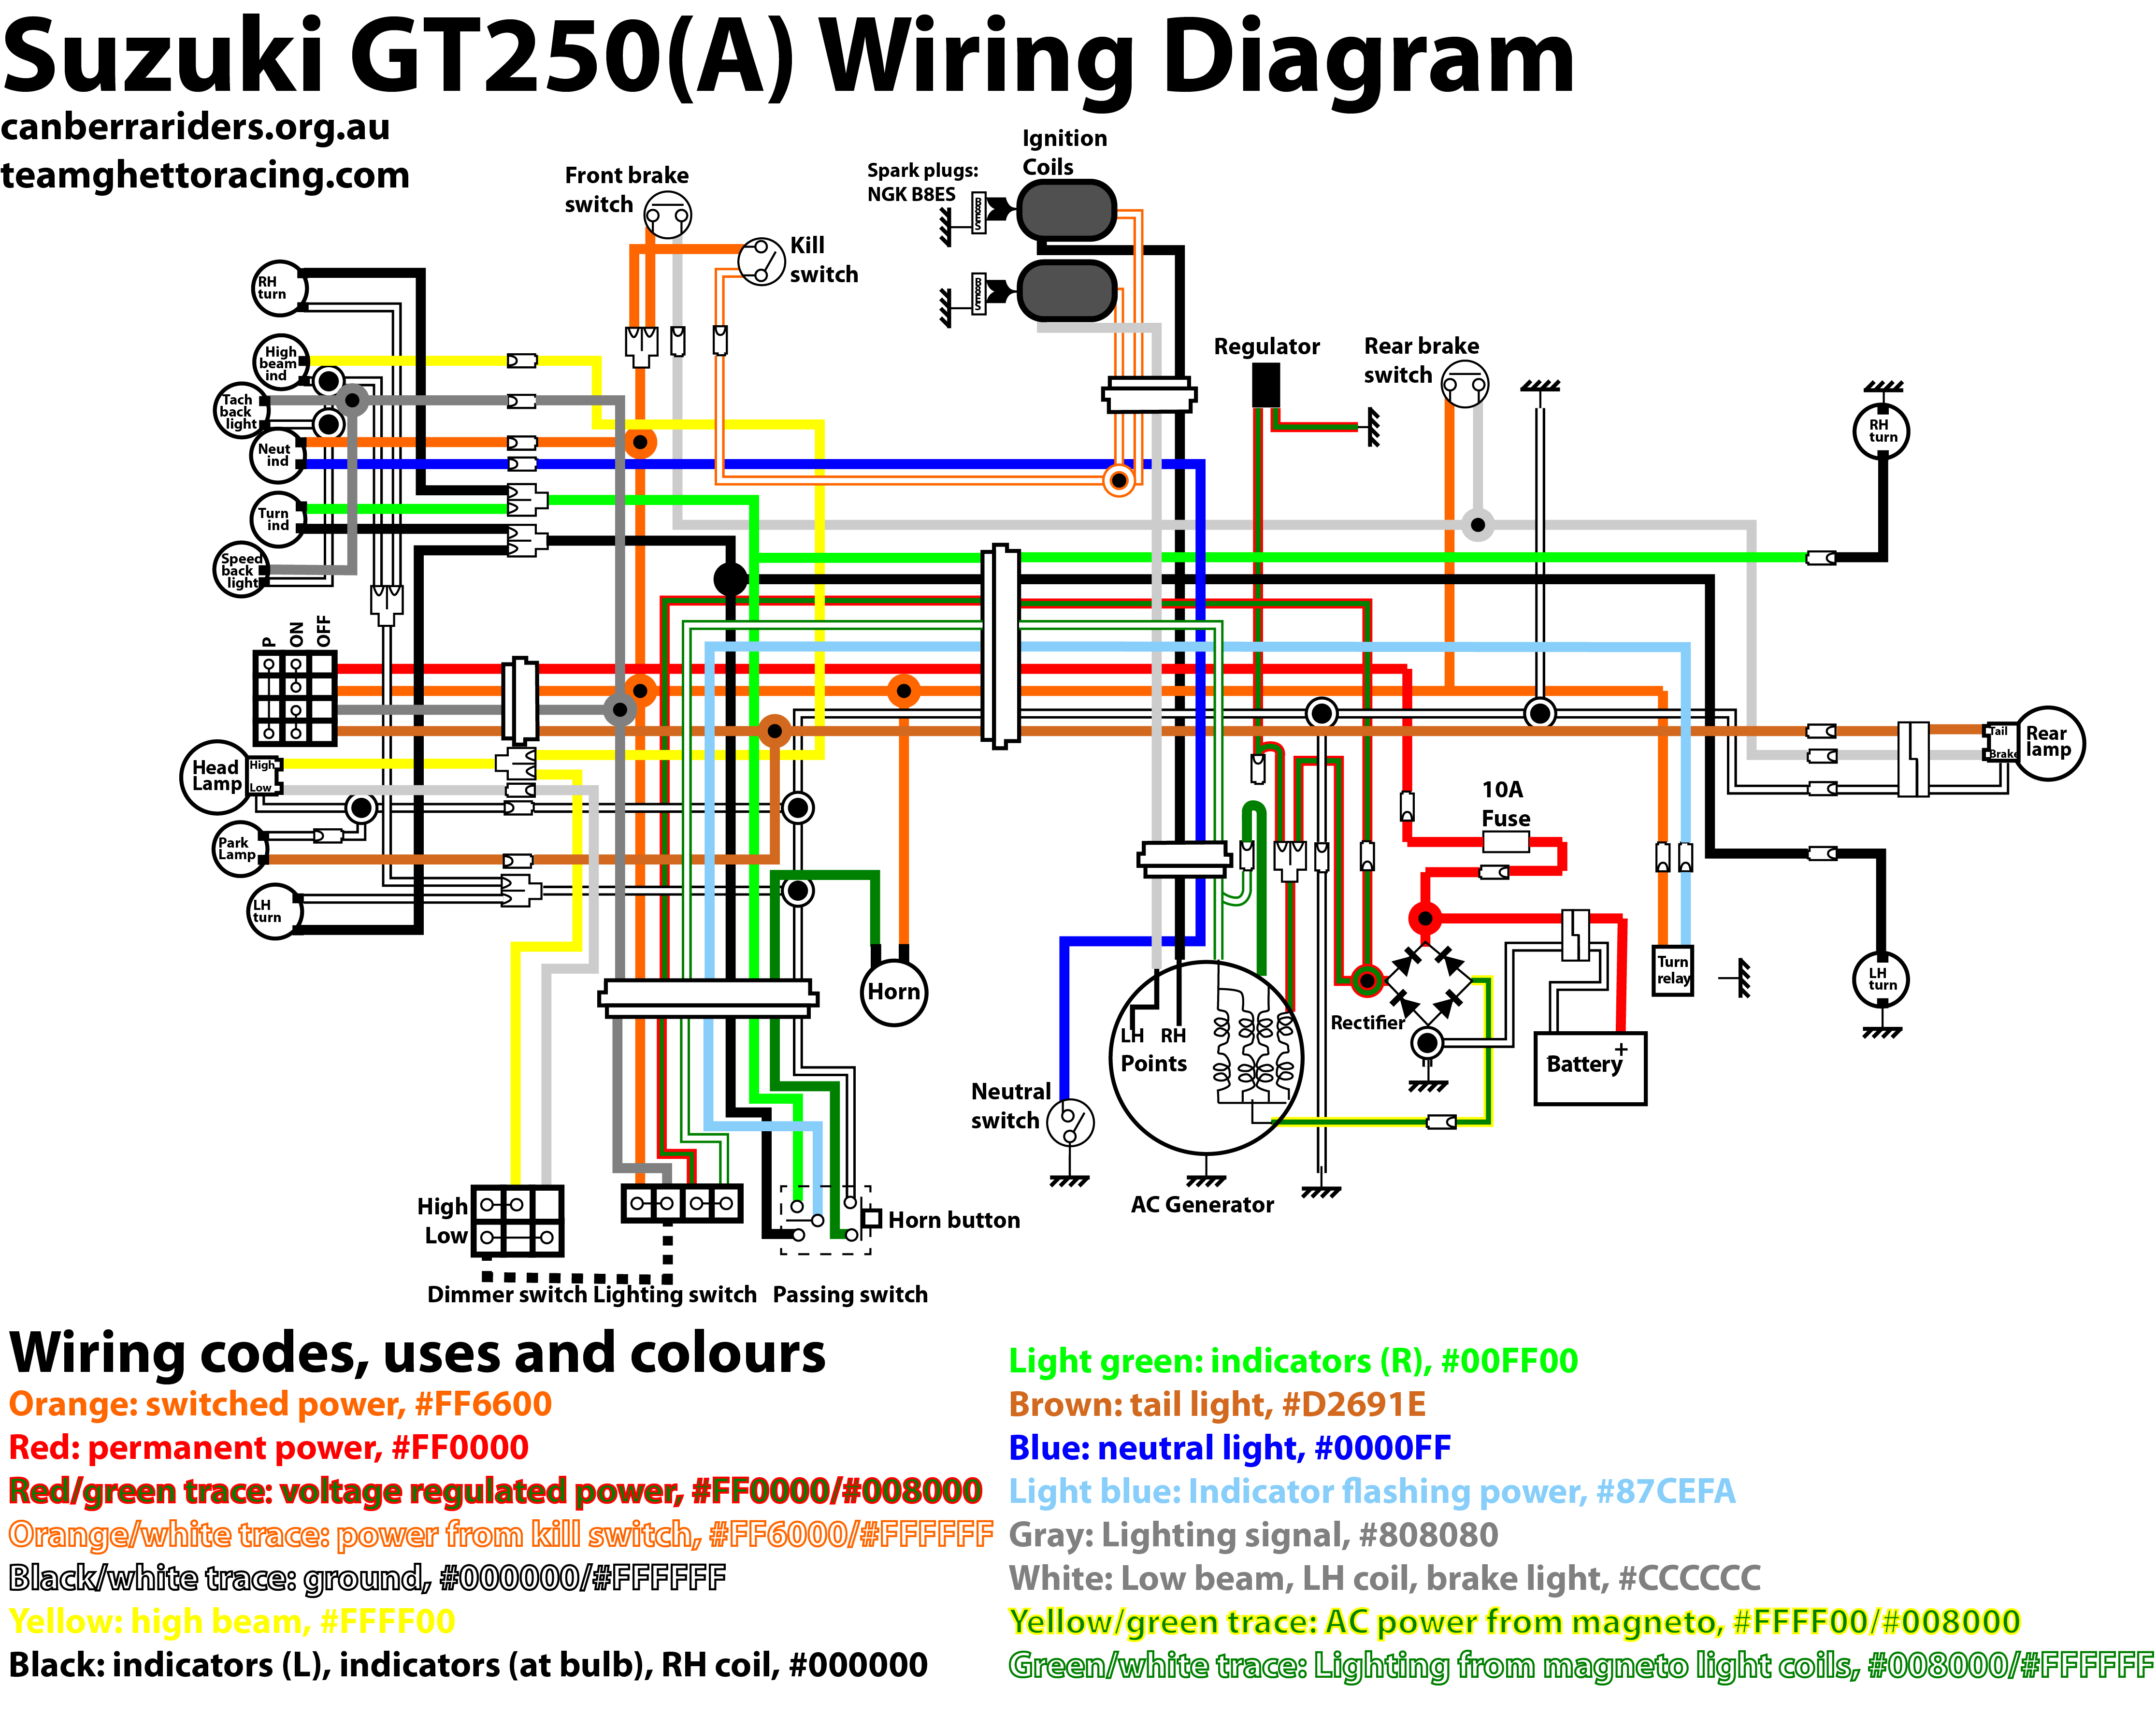 Suzuki Gt250 Electrical Work Tgr Team Ghetto Racing Suzuki LT230 Wiring-Diagram  Suzuki Wiring Diagram